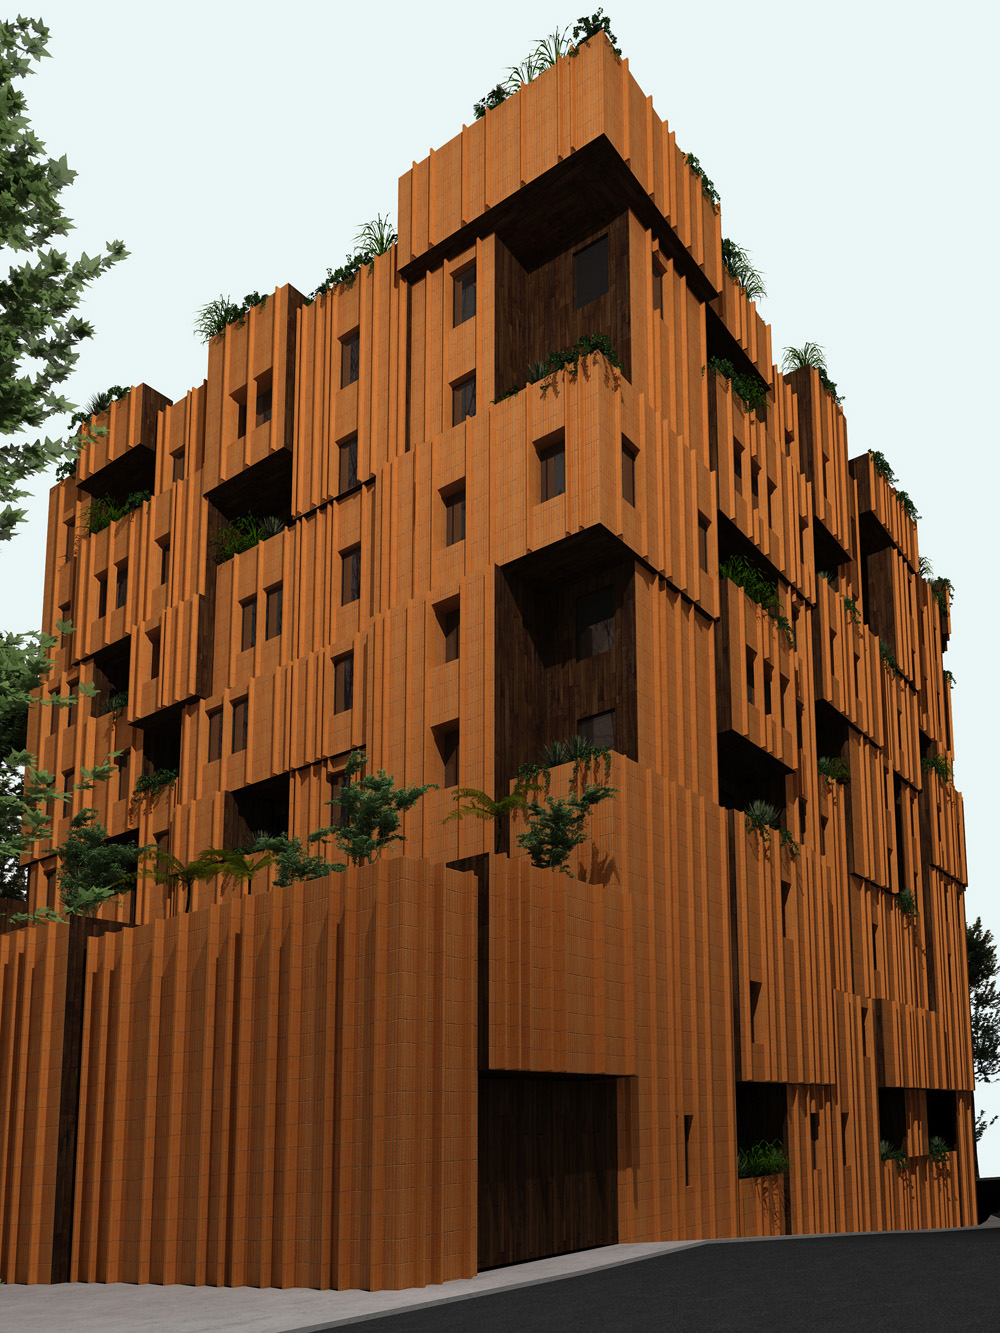 17-tehran-alireza-darband-render-facade-south